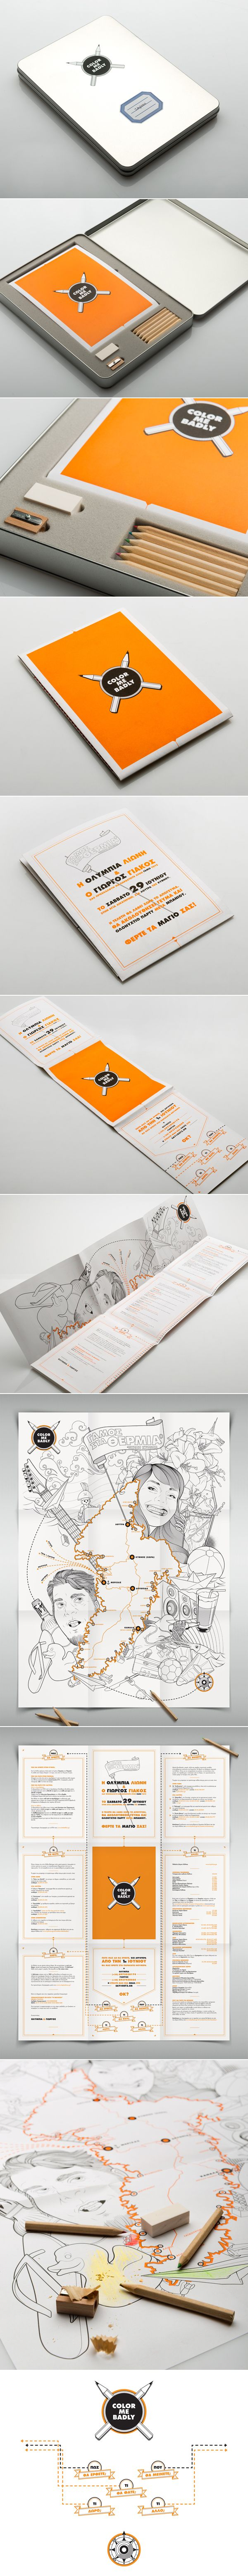 Color Me Badly Wedding Invitation.  The invitation for Olympia's and Yiorgos' wedding which took place on the island of Kythnos in Greece. #wedding_invitation #packaging #illustration #print_design #comeback_studio